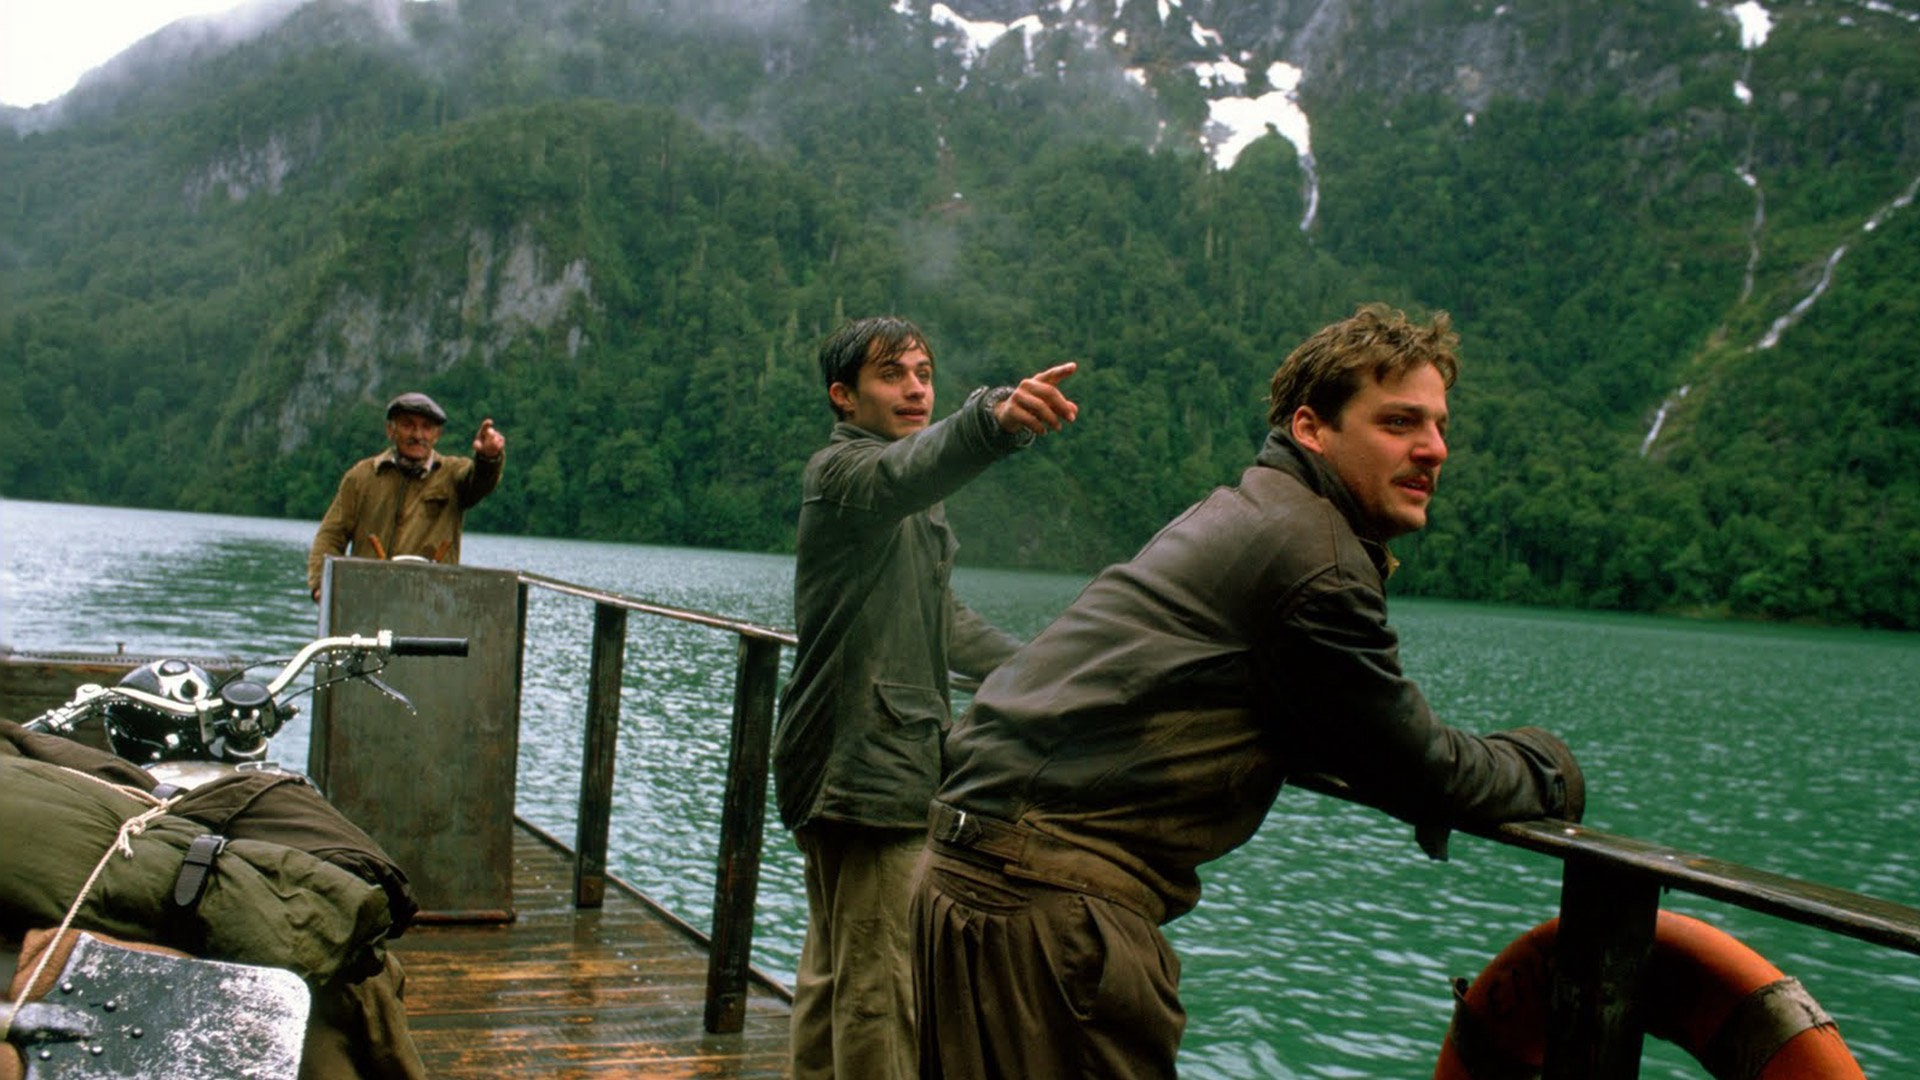 Three men ride down the river on a ferry. Two of the men are pointing to the right of the frame.